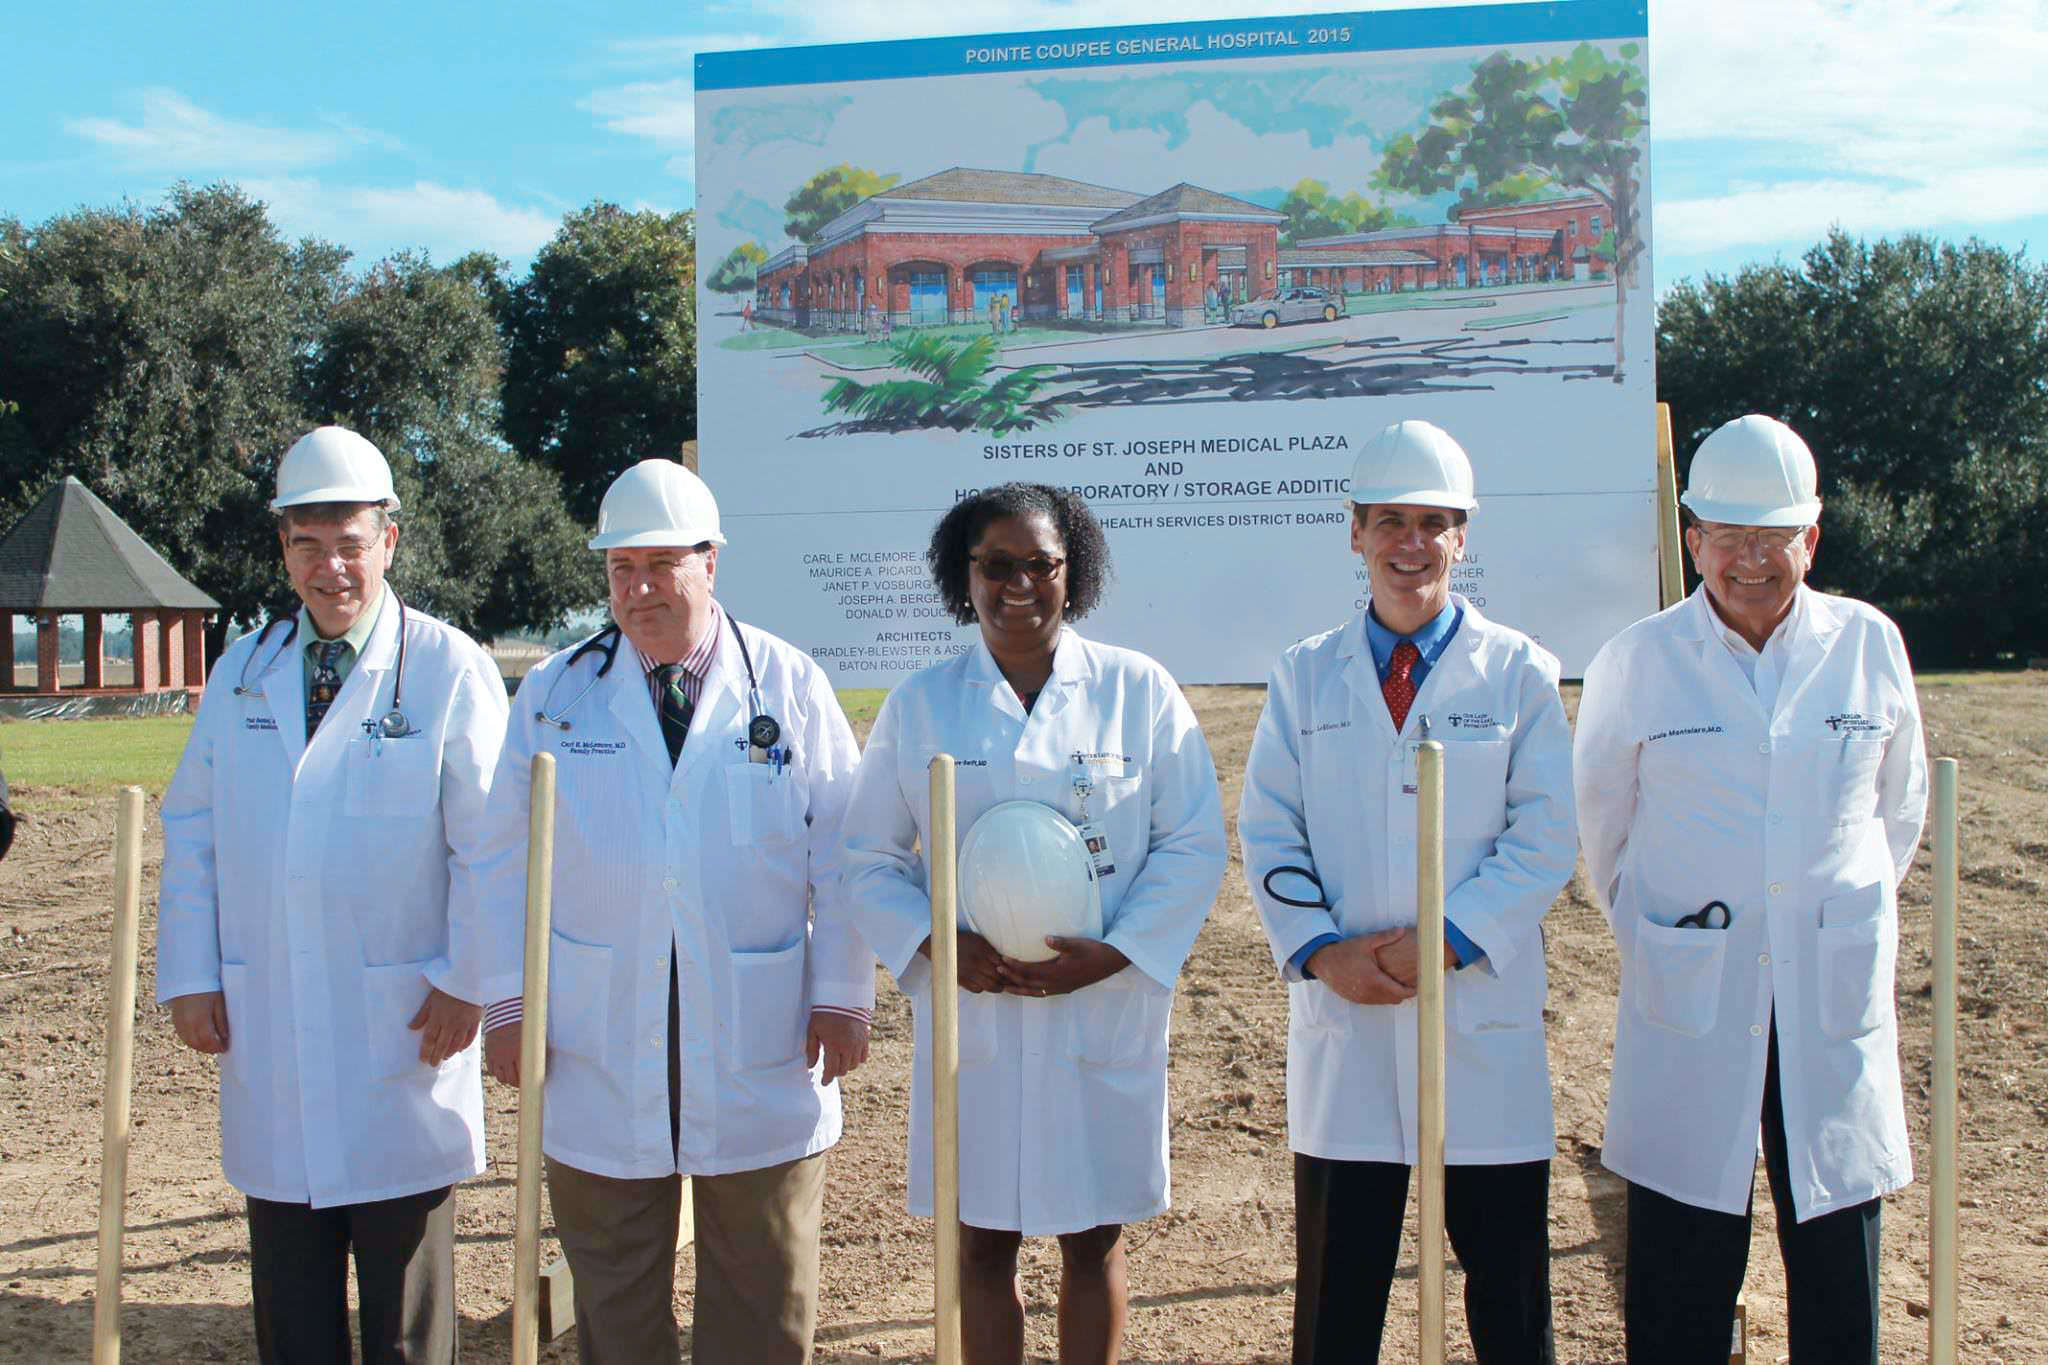 Our Lady of the Lake physicians (left to right) Dr. Paul Rachal, Dr. Carl McLemore, Dr. Carol Swift, Dr. Brian LeBlanc, and Dr. Louis Montelaro pose for photos in front of the future site of their new offices.